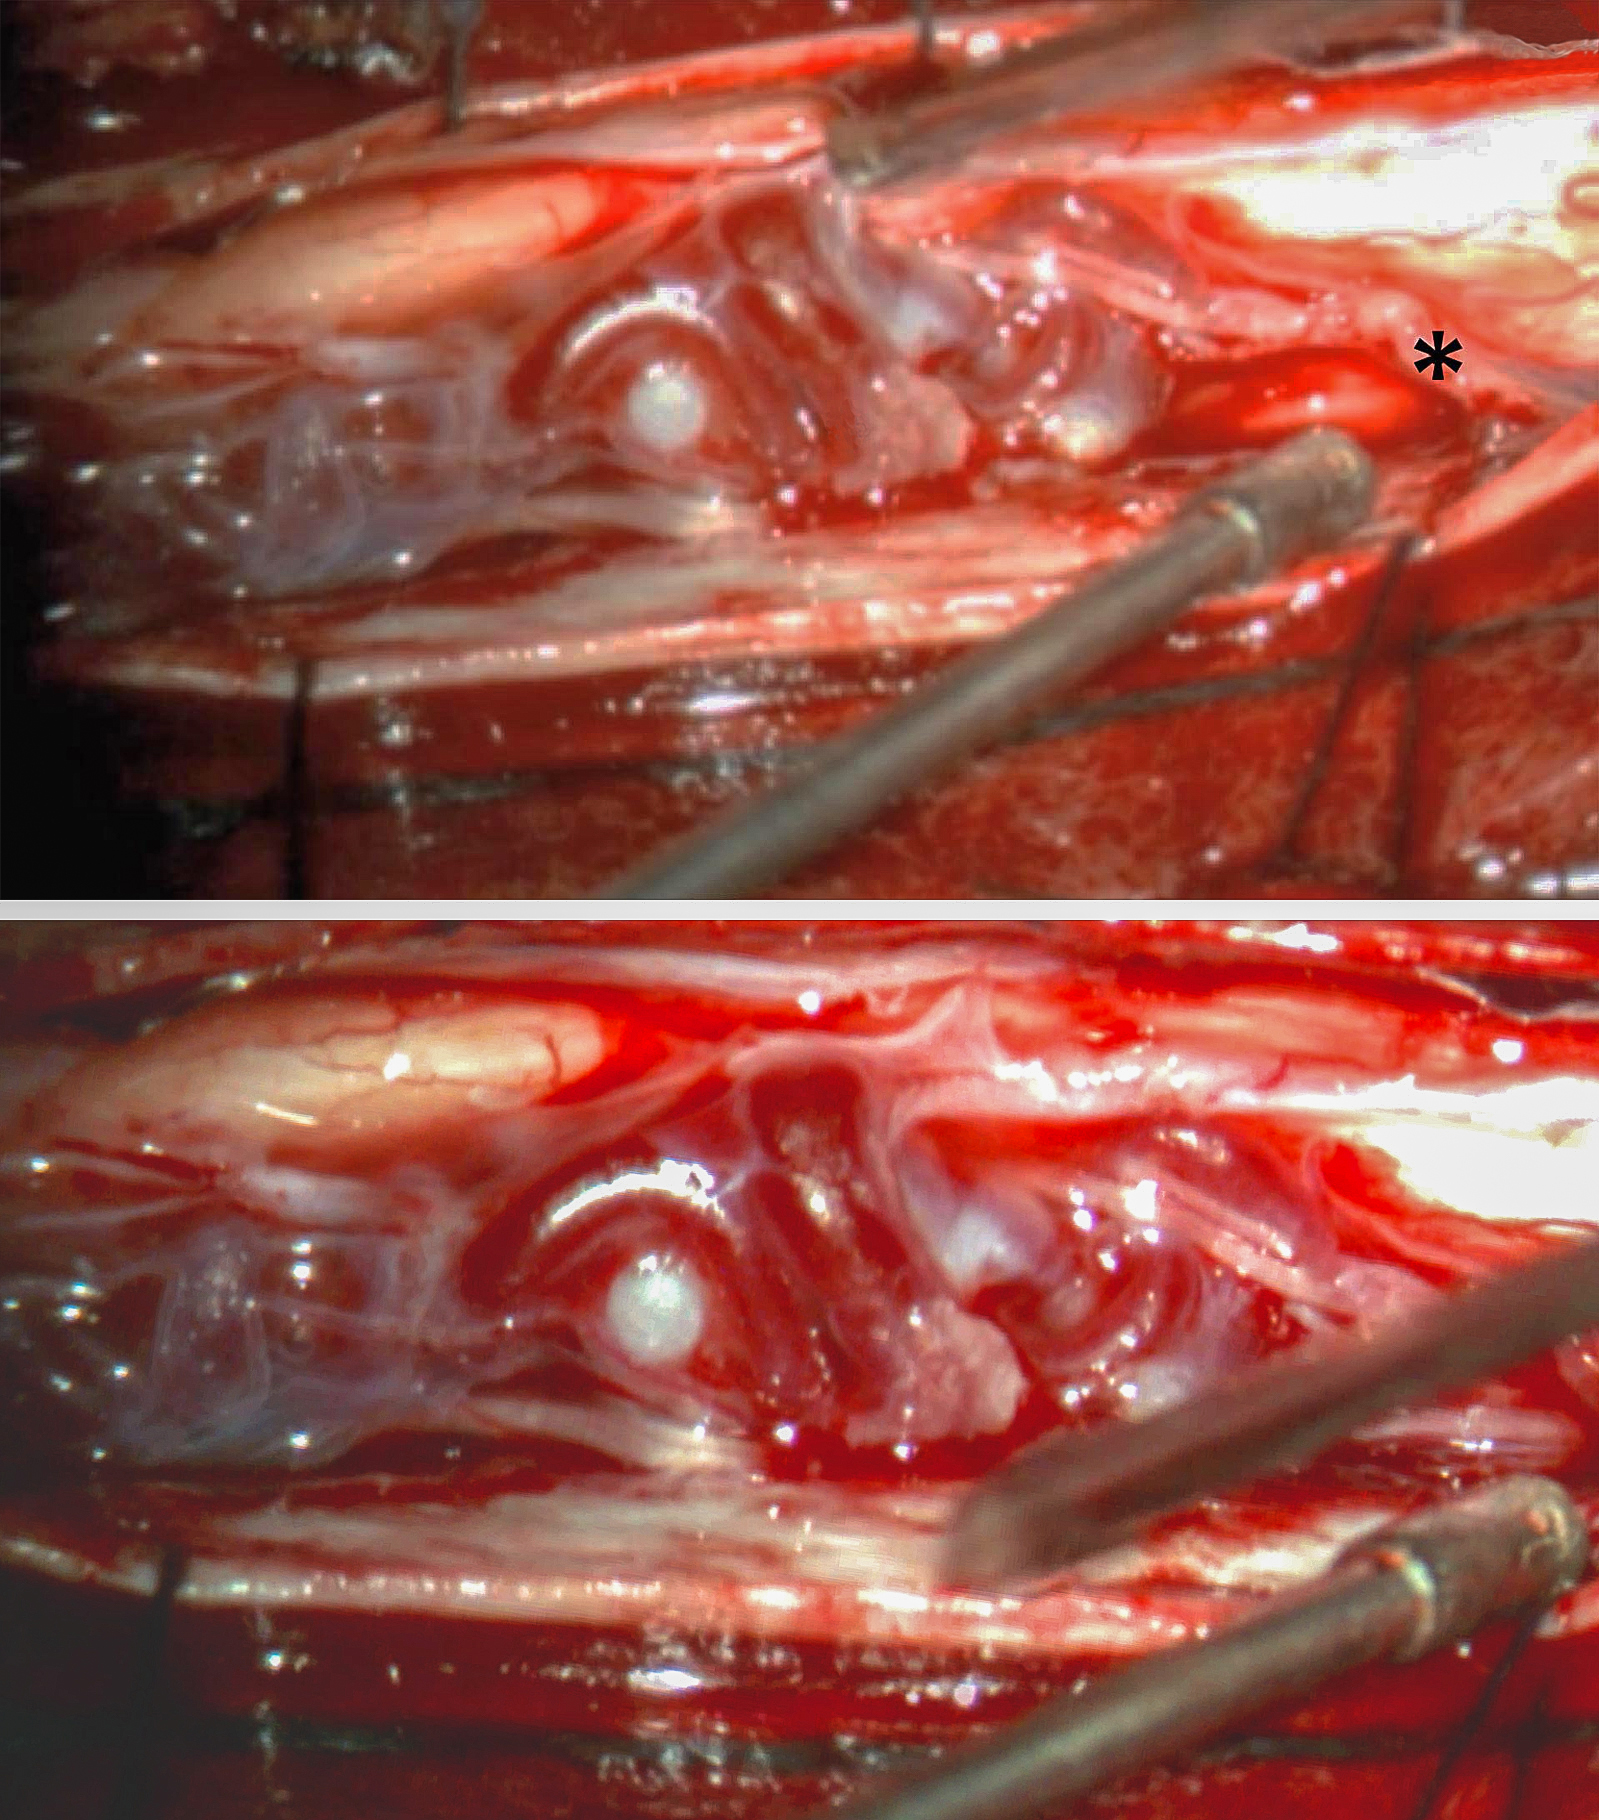 Figure 4: The initial inspection after arachnoid opening reveals a laterally positioned glomus malformation. A major feeder was readily identified along the inferior aspect of the malformation (upper photo, asterisk). See Figures 2 and 3 for preoperative images. A more magnified view of the exophytic part of the malformation is also shown (lower photo).